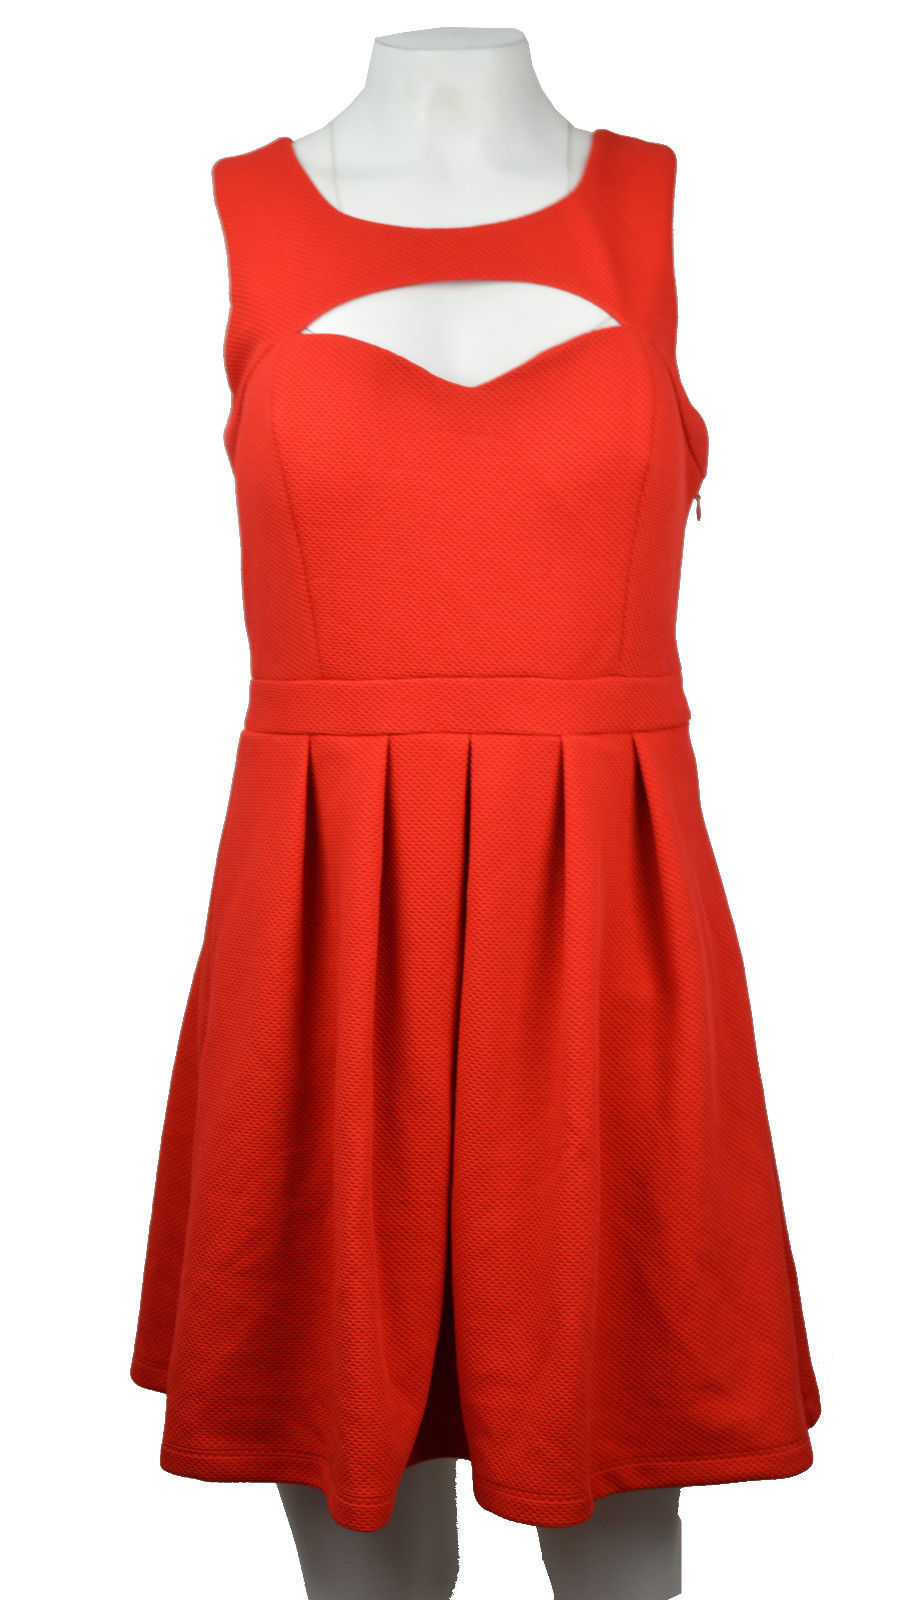 Primary image for Guess Womens Sz 10 Square Neck Sleeveless Red Dress 2357-3